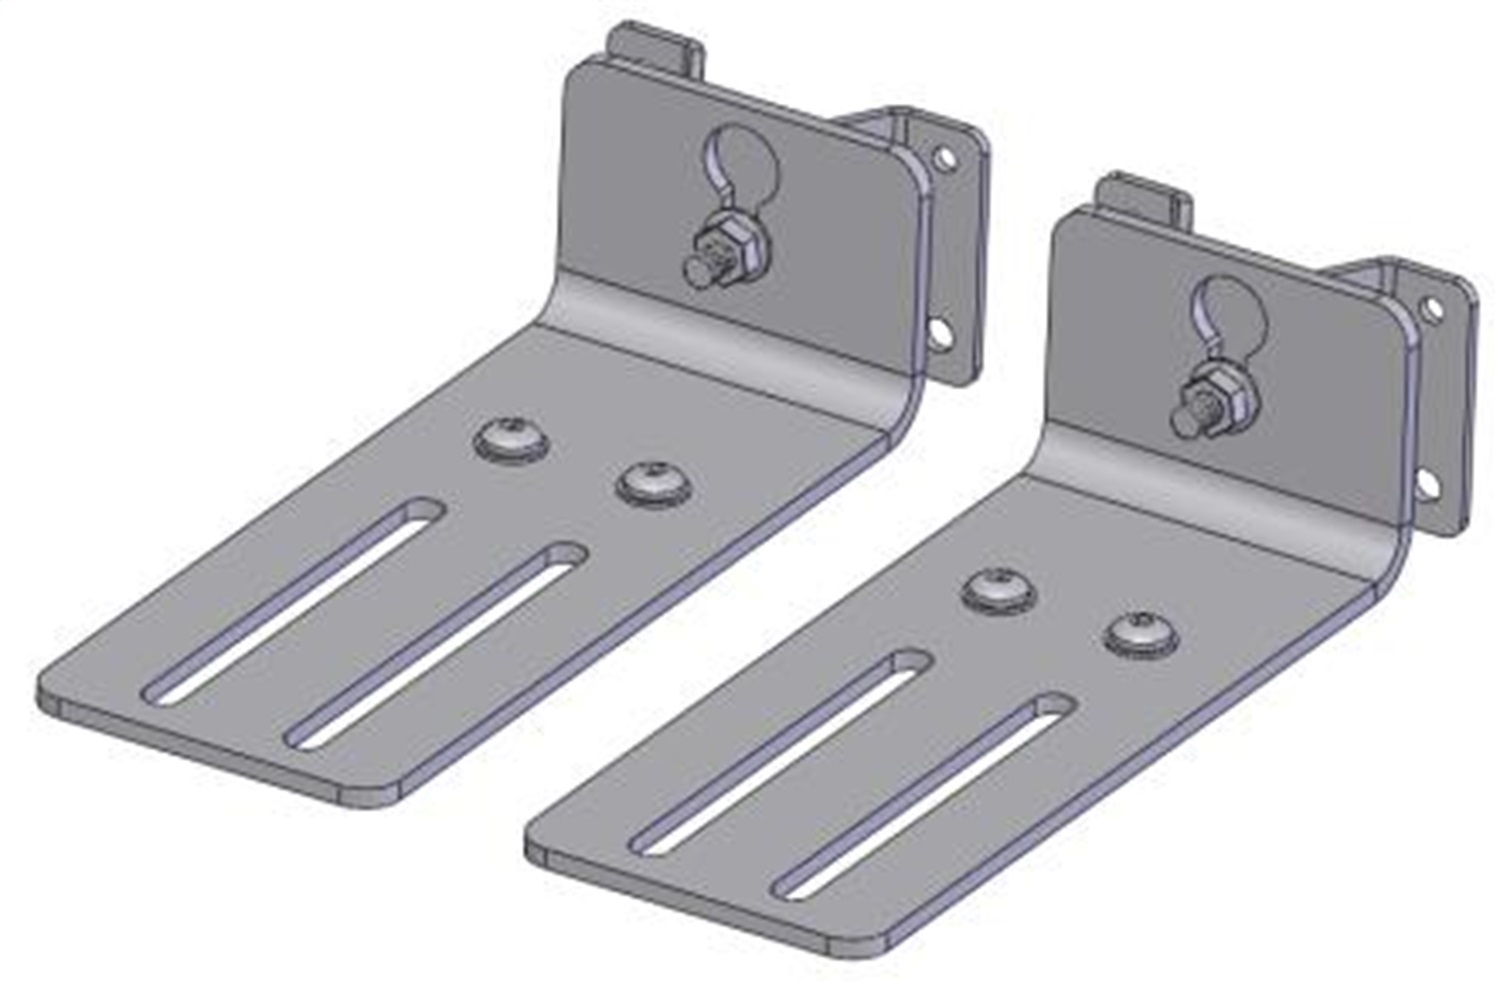 ARB, USA 813405 Awning Quick Release Bracket Kit